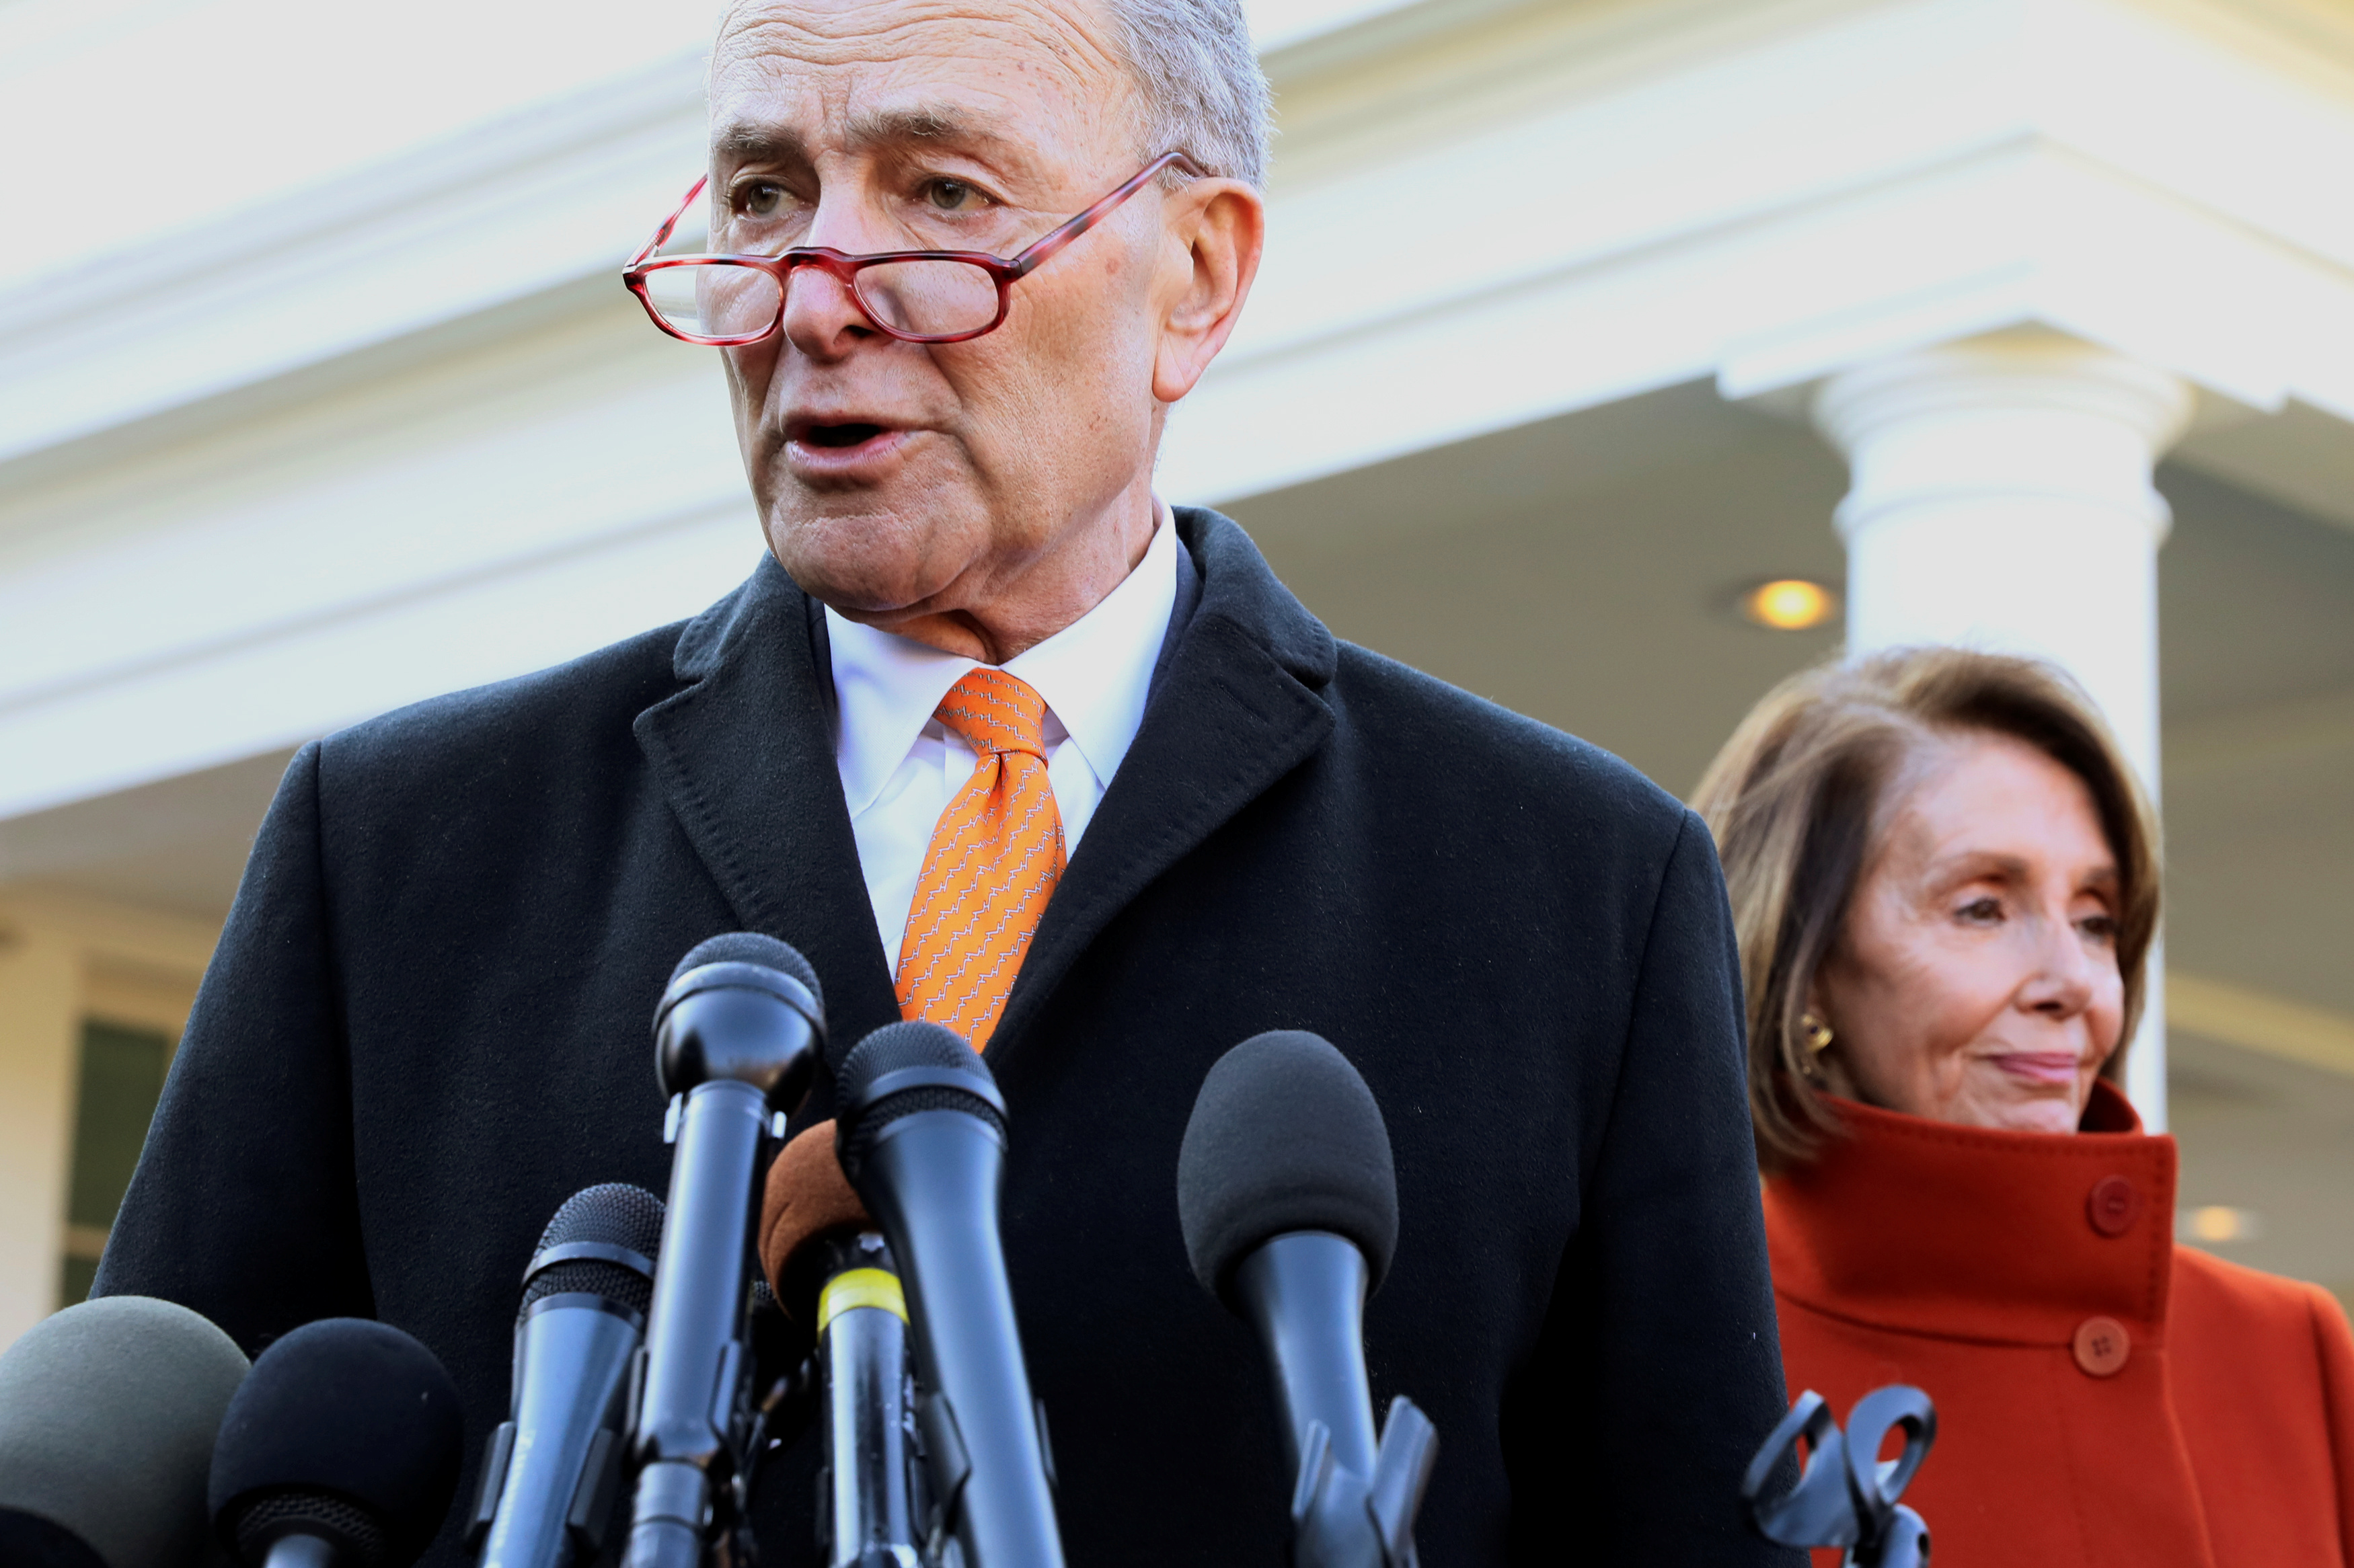 U.S. Senate Minority Leader Schumer and House Speaker designate Pelosi speak to reporters after meeting with President Trump at the White House in Washington